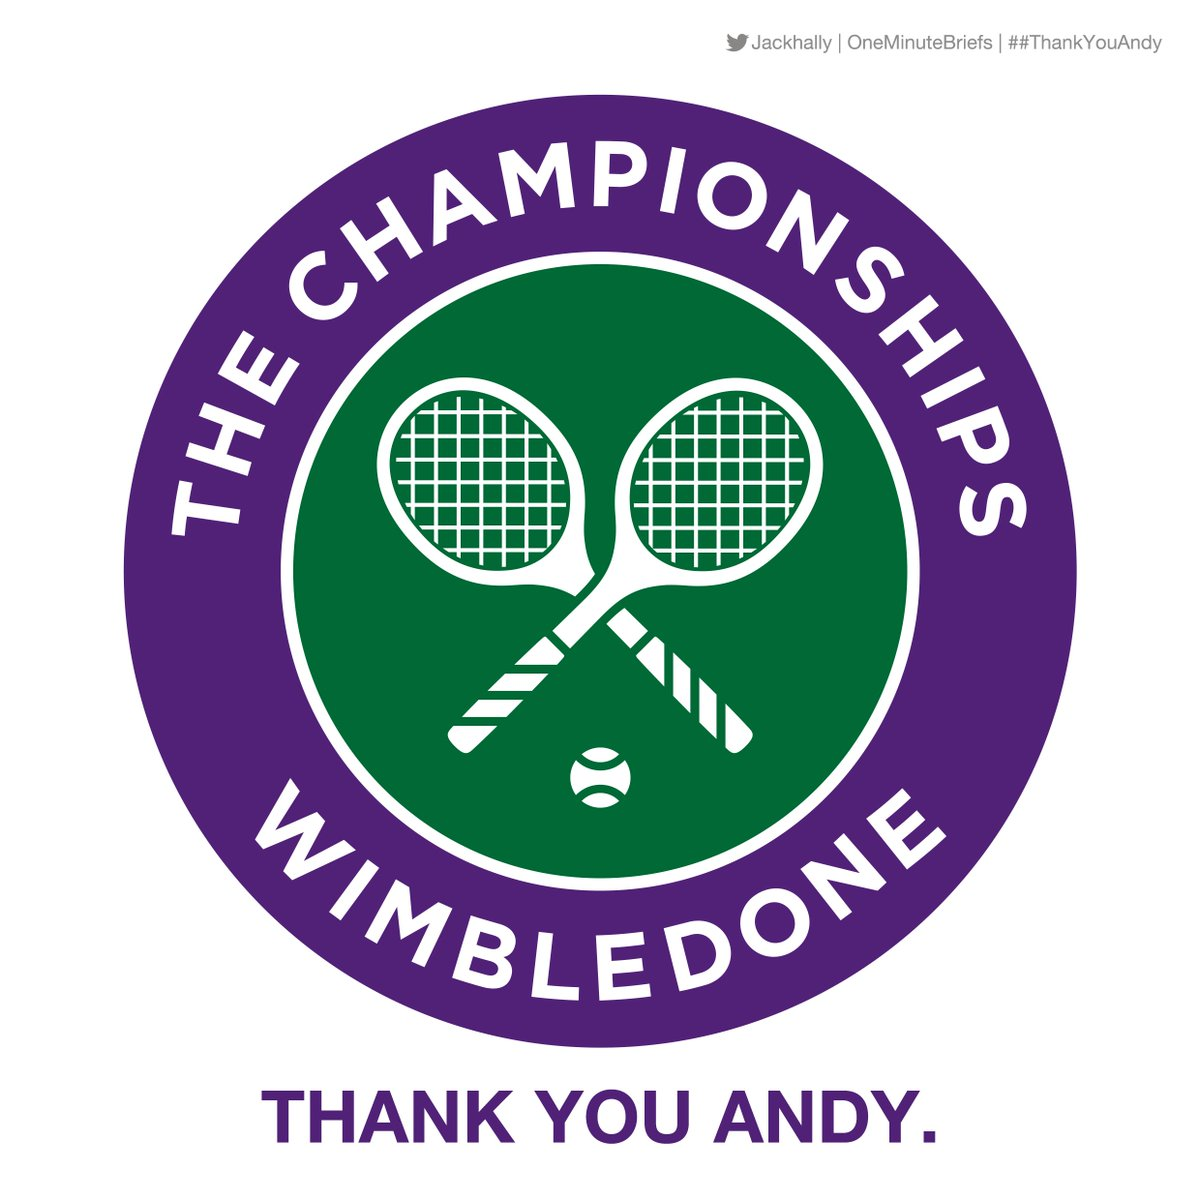 Wimble-DONE.  One Minute Brief of the Day: Create response ads for @andy_murray #Wimbledon #MurrayRetirement  #AndyMurray #creative #advertising @OneMinuteBriefs<br>http://pic.twitter.com/uvhXF2LiKv